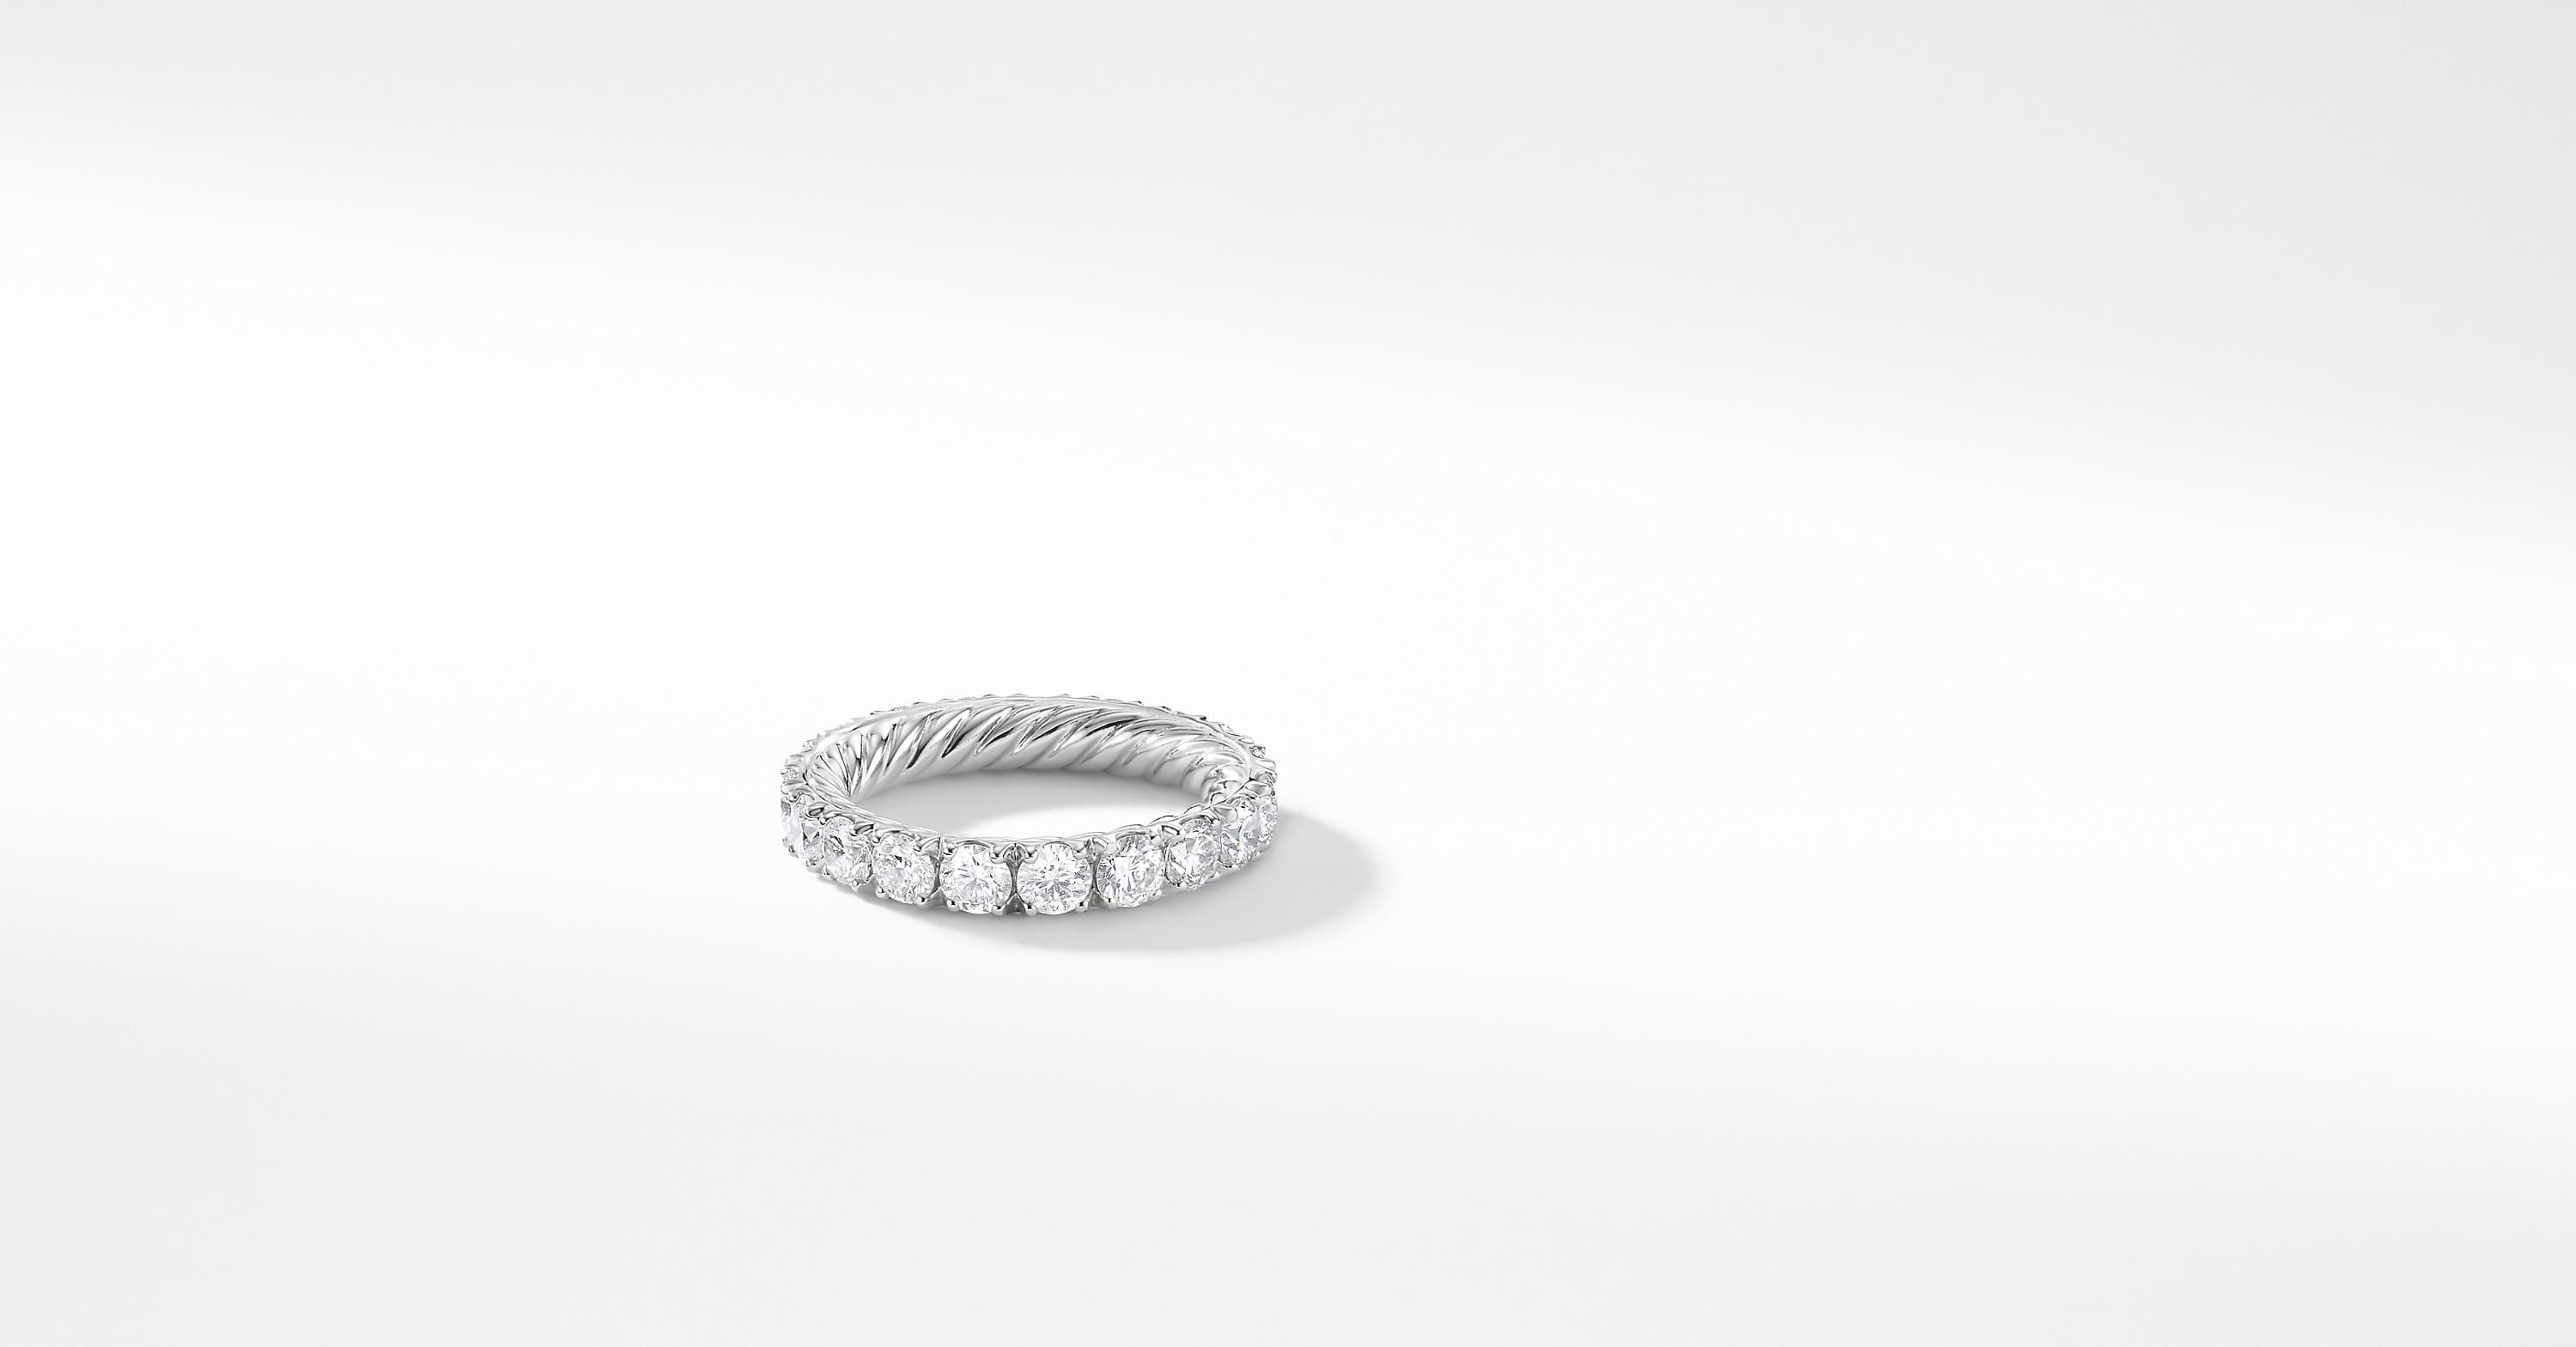 DY Eden Single Row Wedding Band with Diamonds in Platinum, 3.6mm